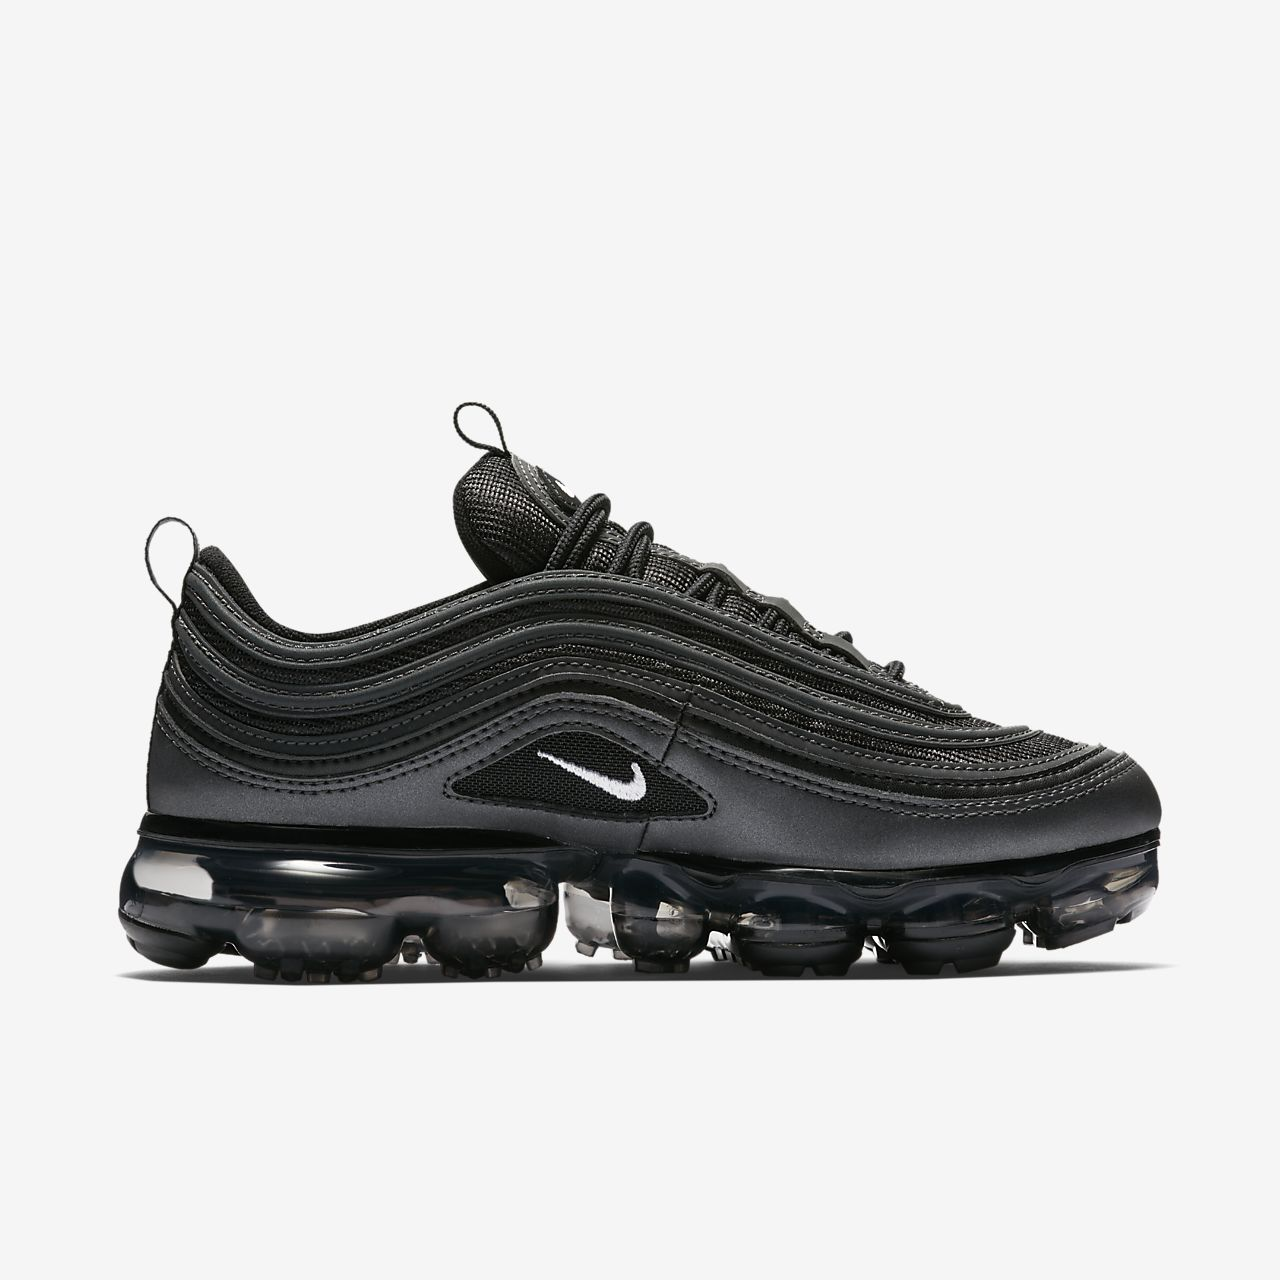 Chaussure Fille Vapormax Fille Nike Nike Chaussure Chaussure Vapormax toshBQCrdx